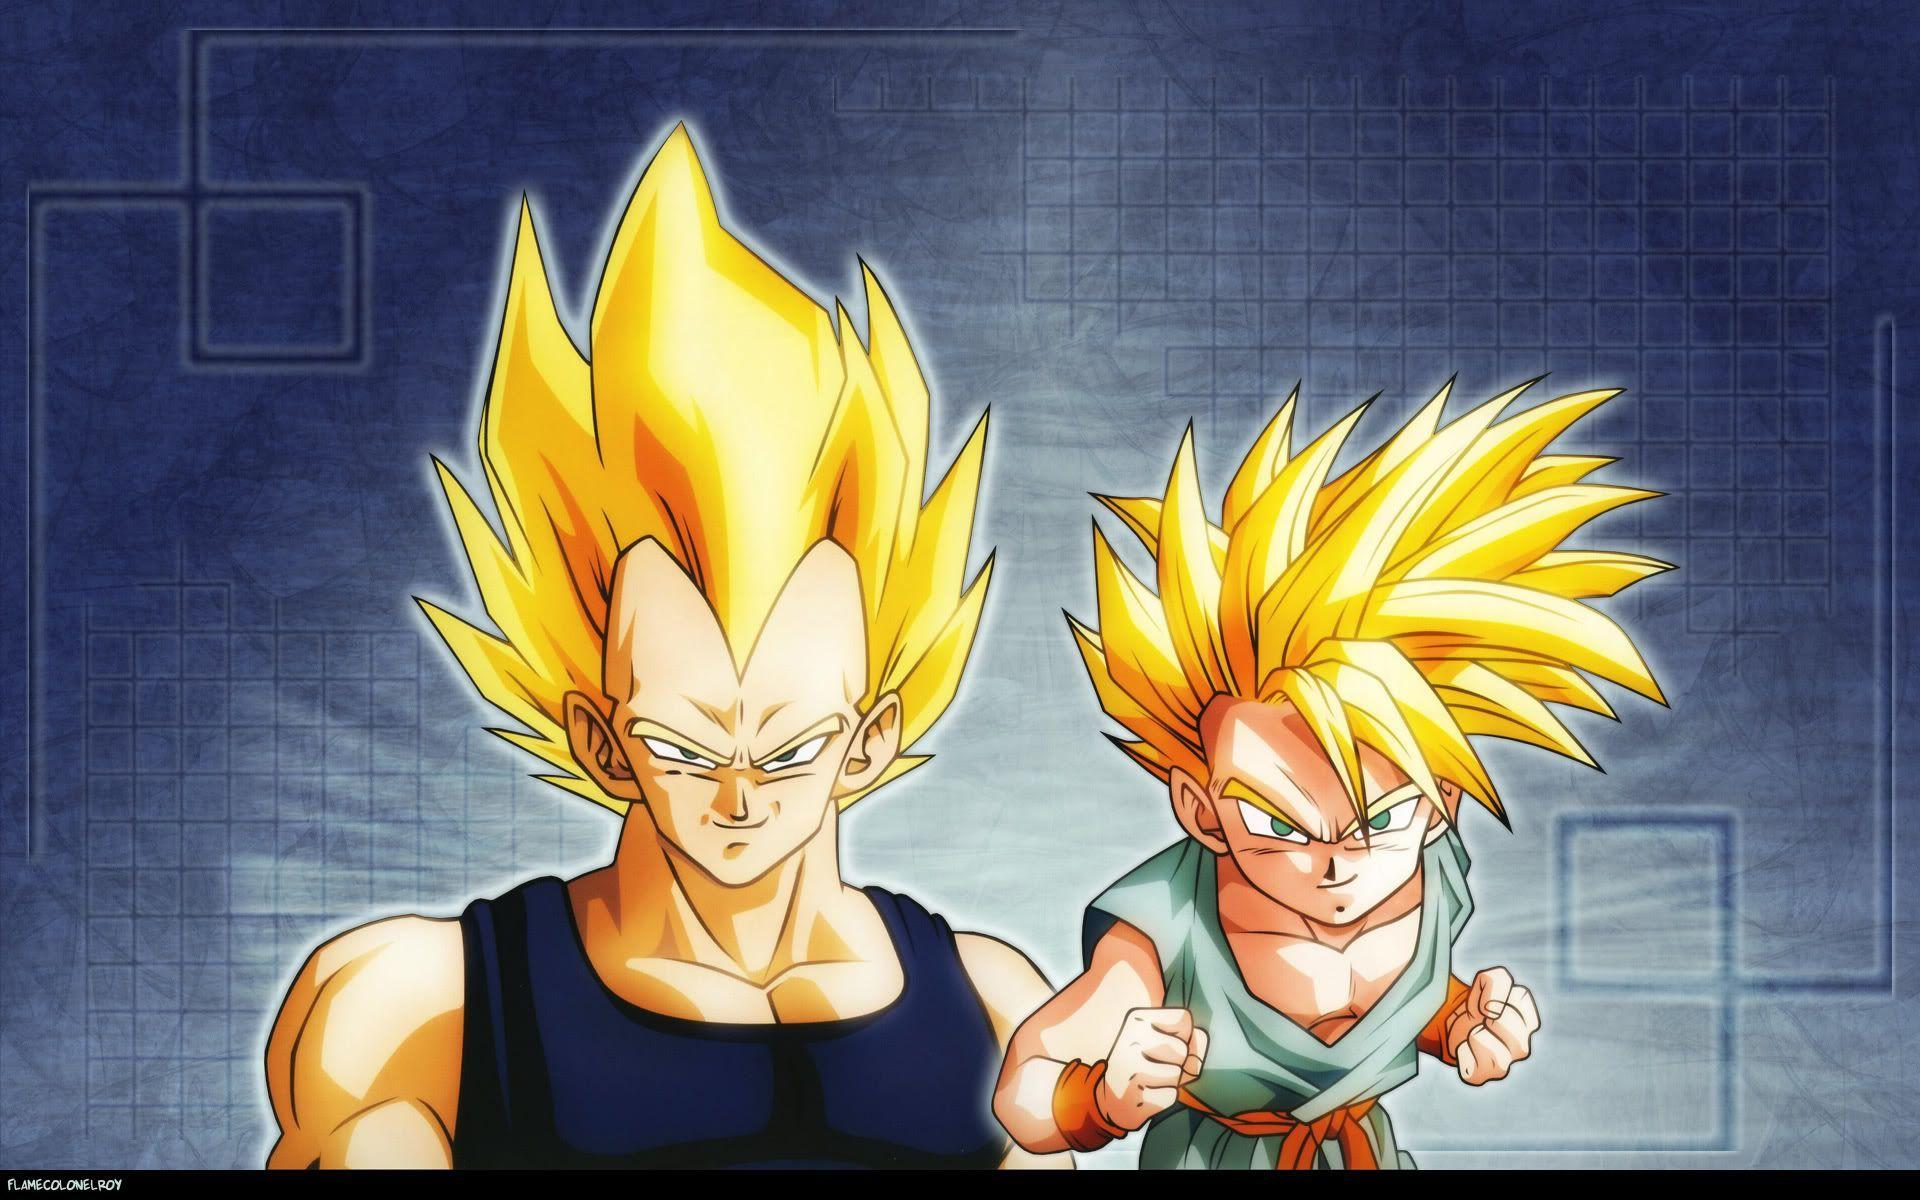 Dragon Ball Z Trunks Gallery 598254347 Wallpapers for Free